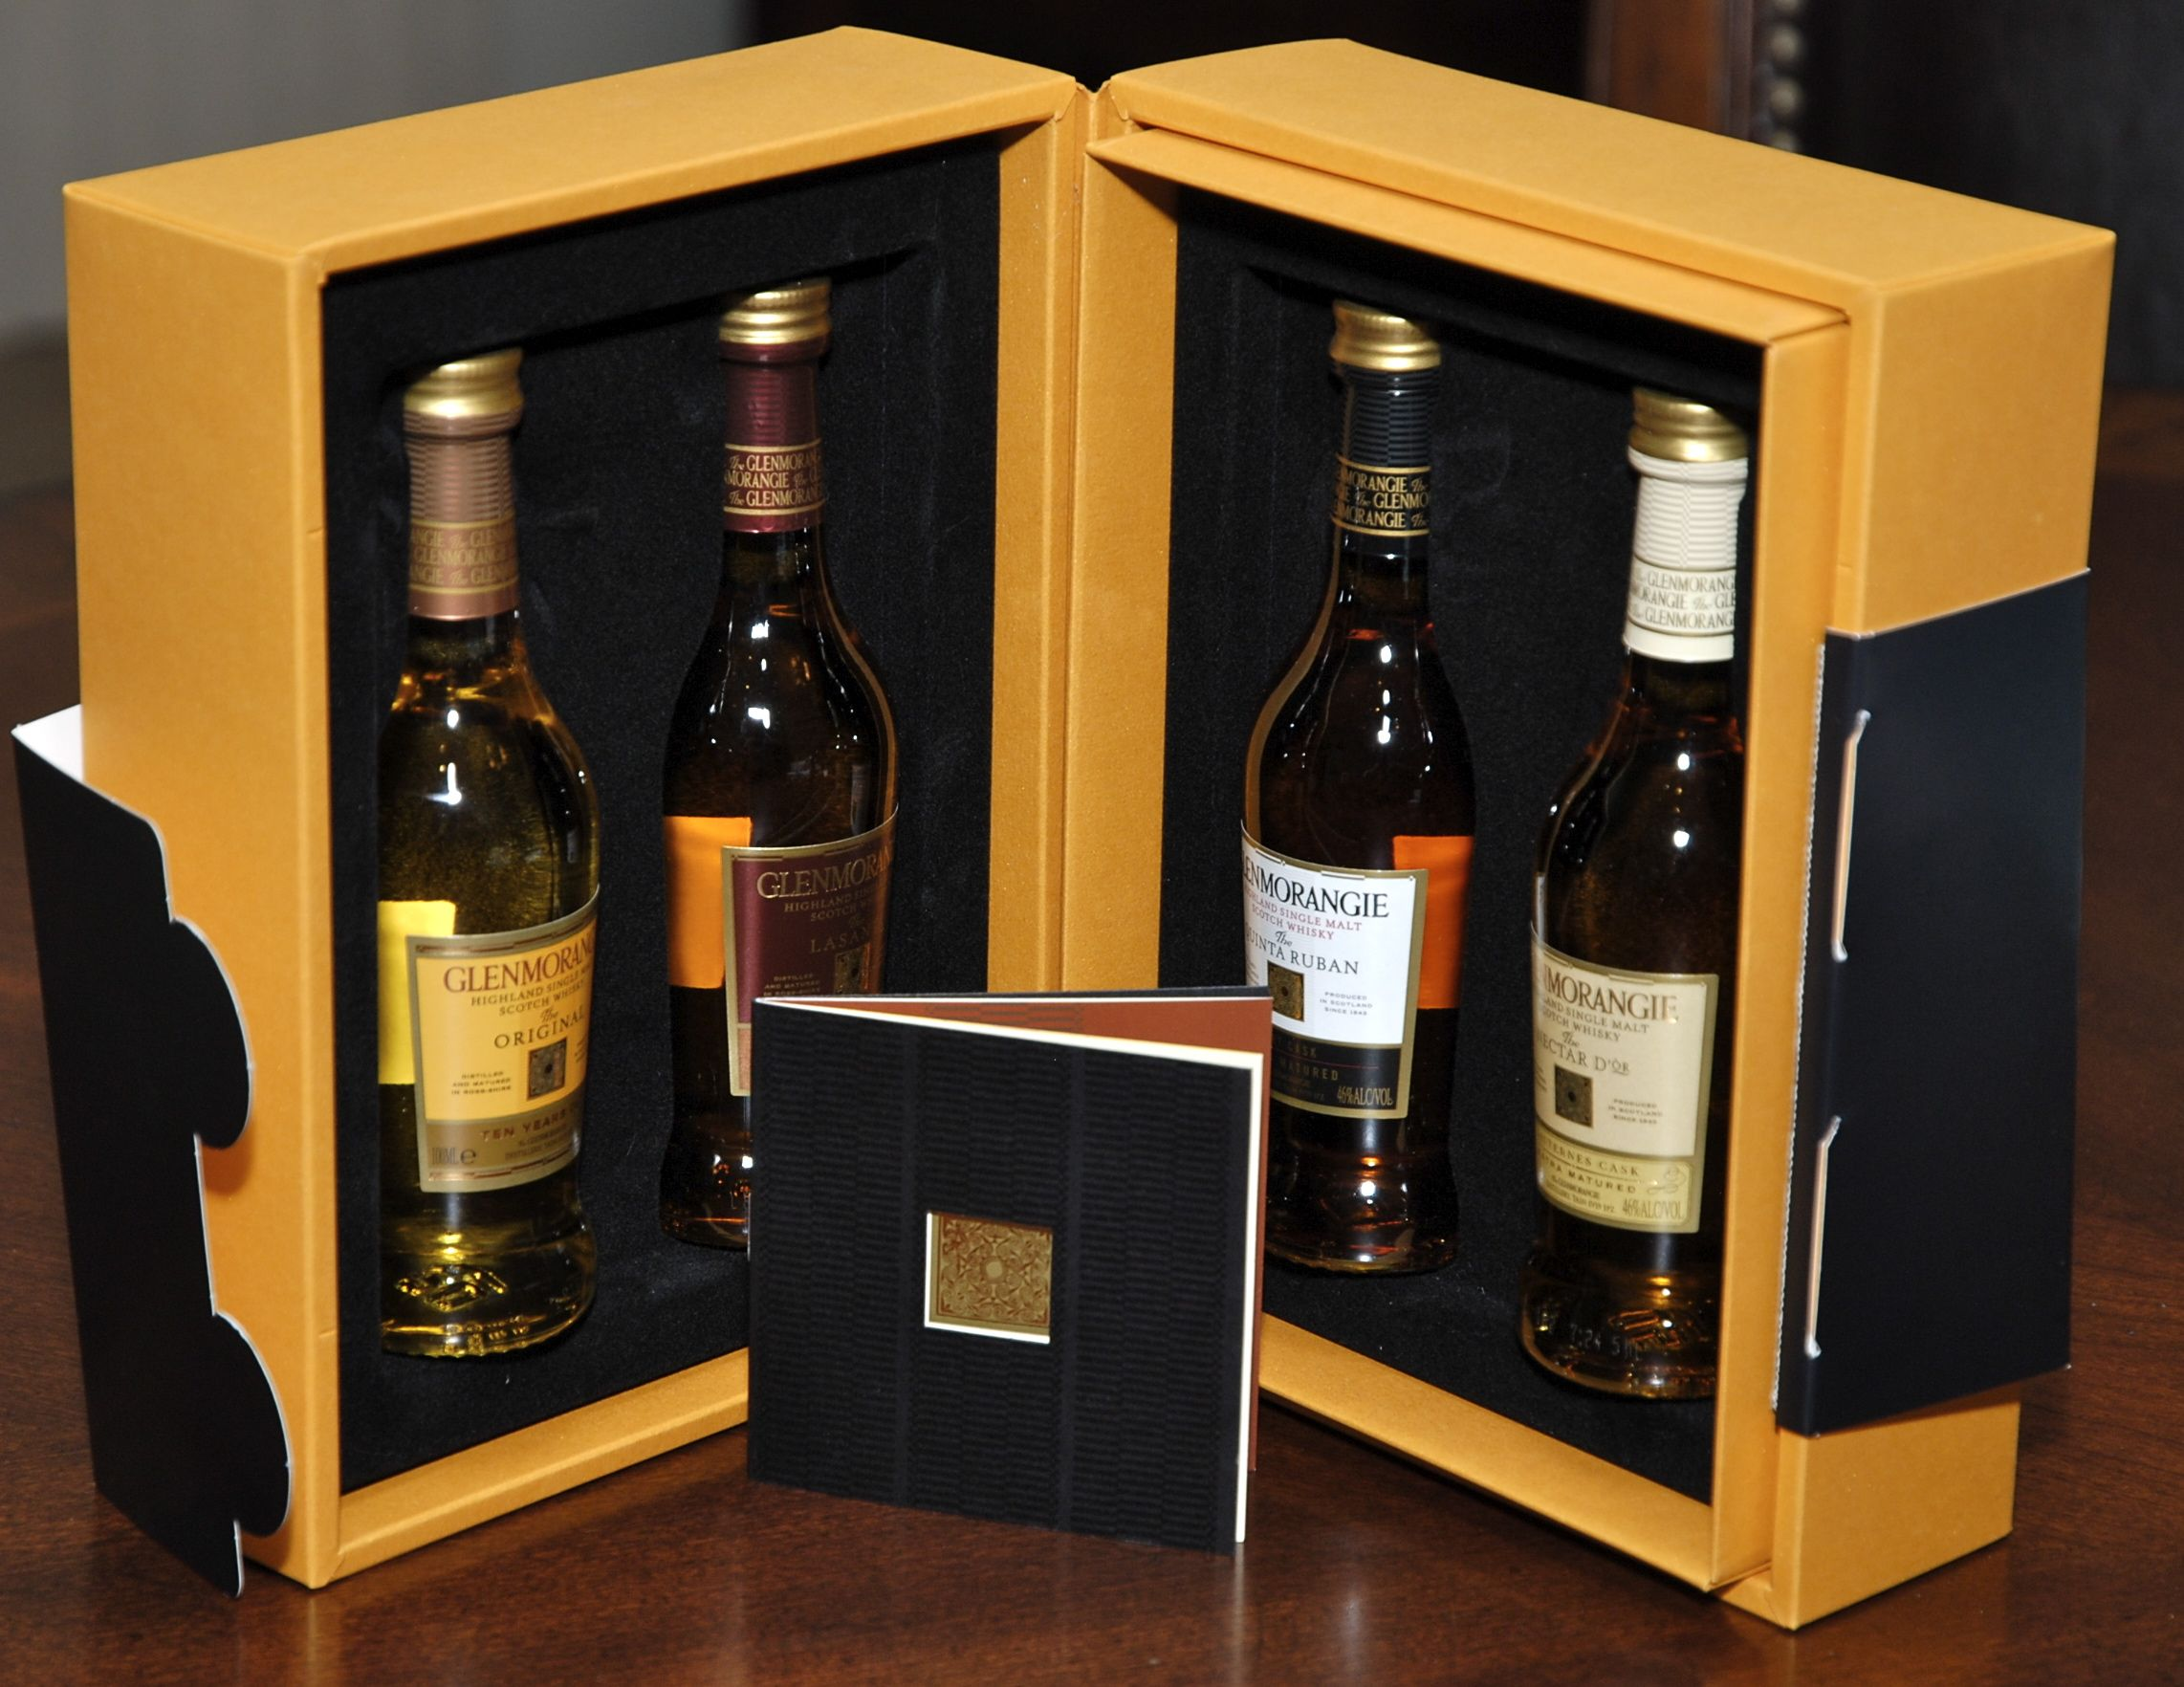 A whisky gift guide 2009 whisky gifting whisky gifts